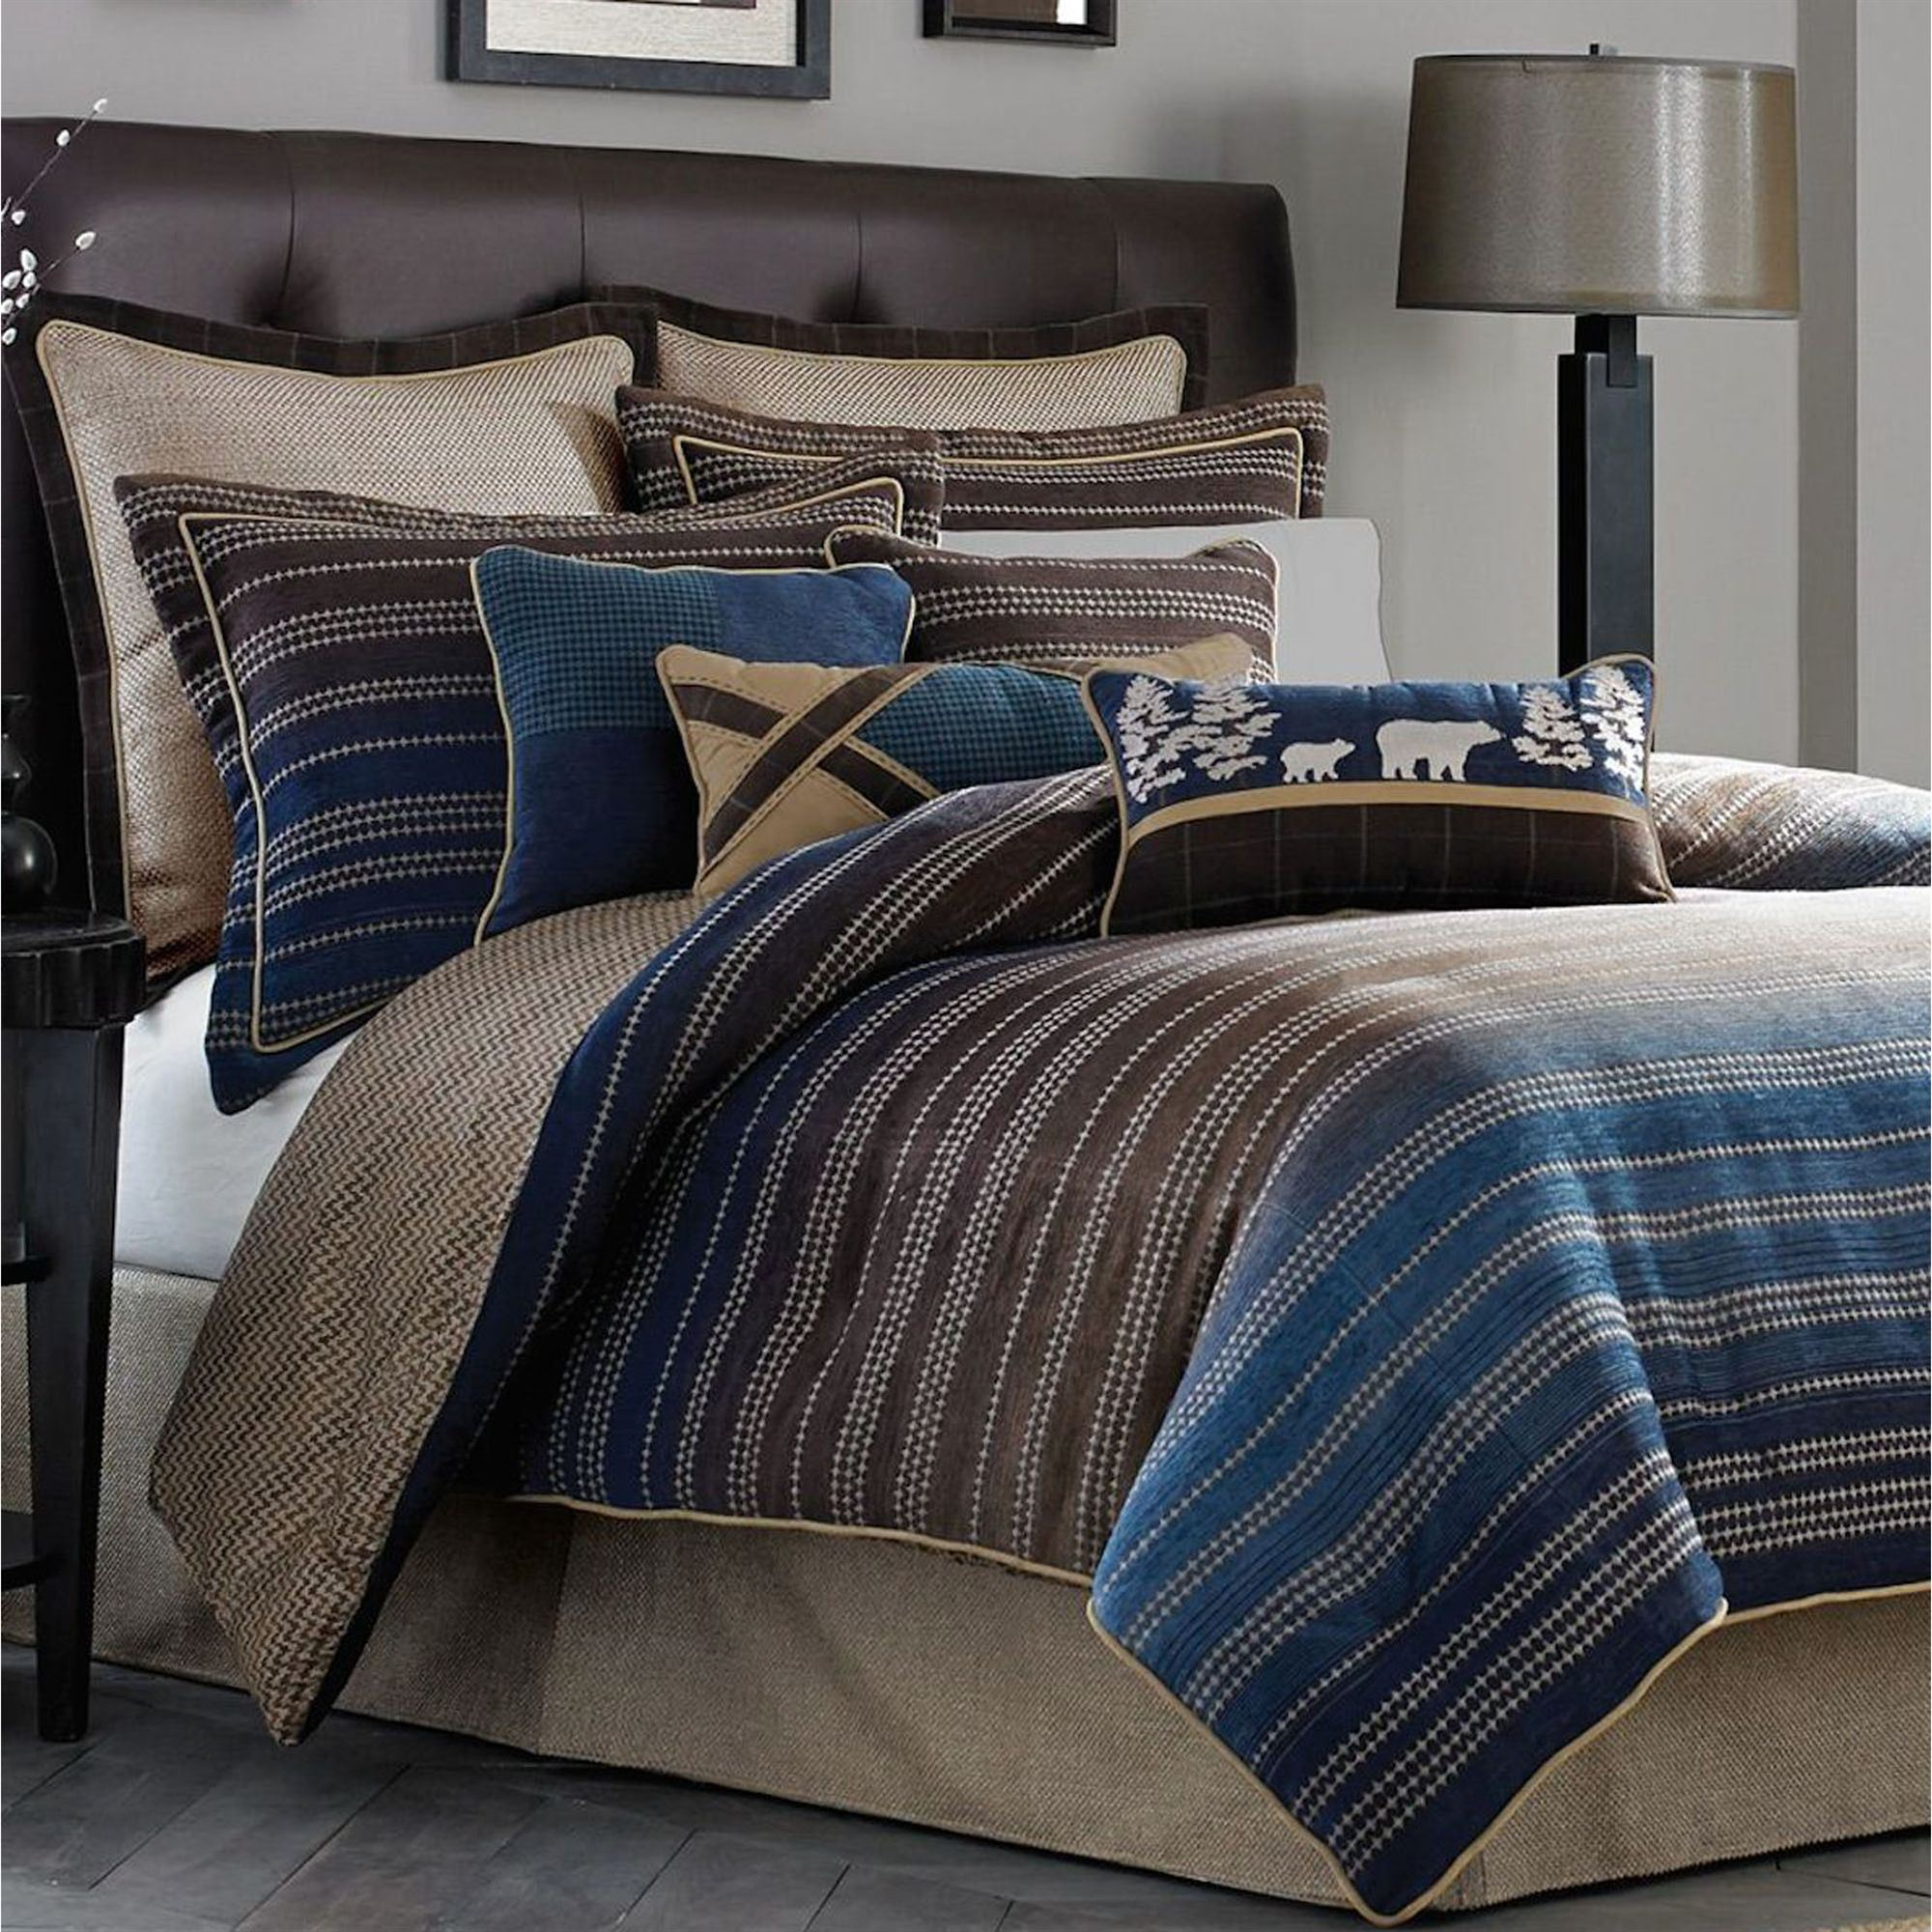 warm amazing ideas lodge paisley image of great comforter sets ecrins